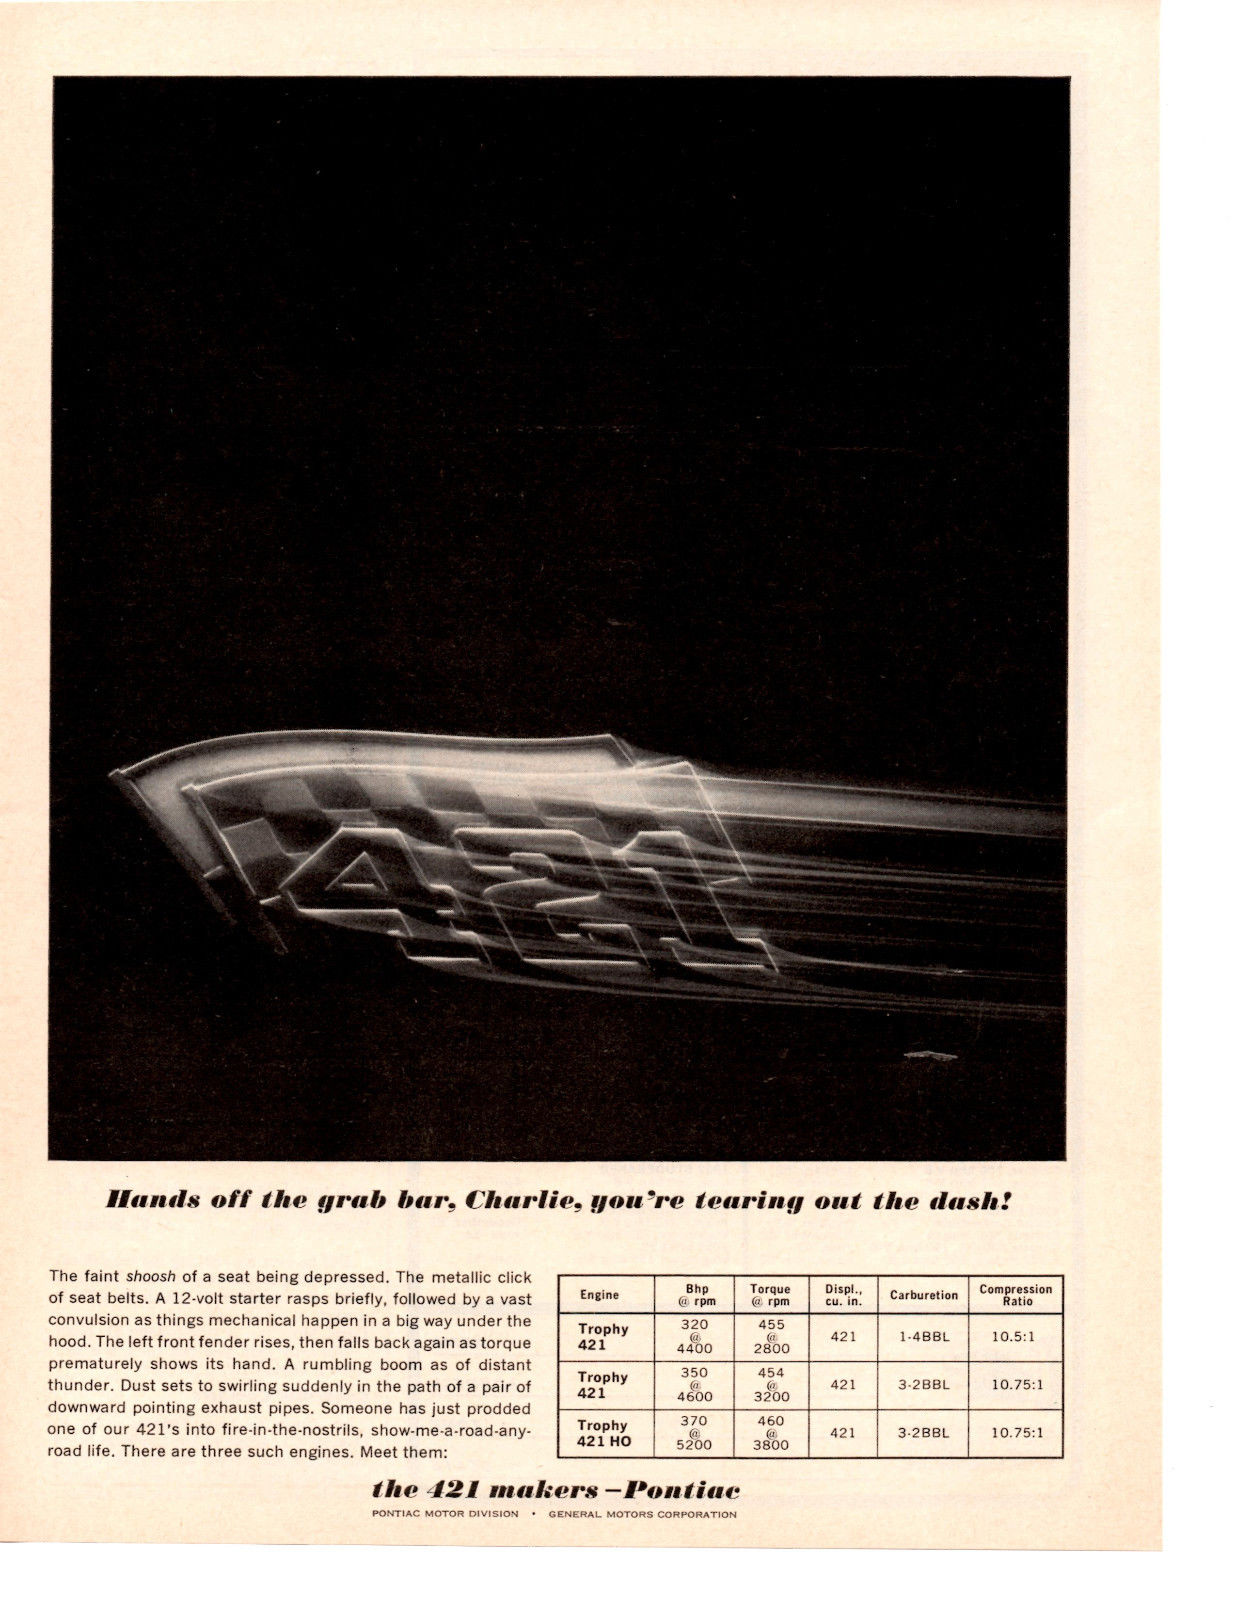 1963 Pontiac 421 Makers Advertisment